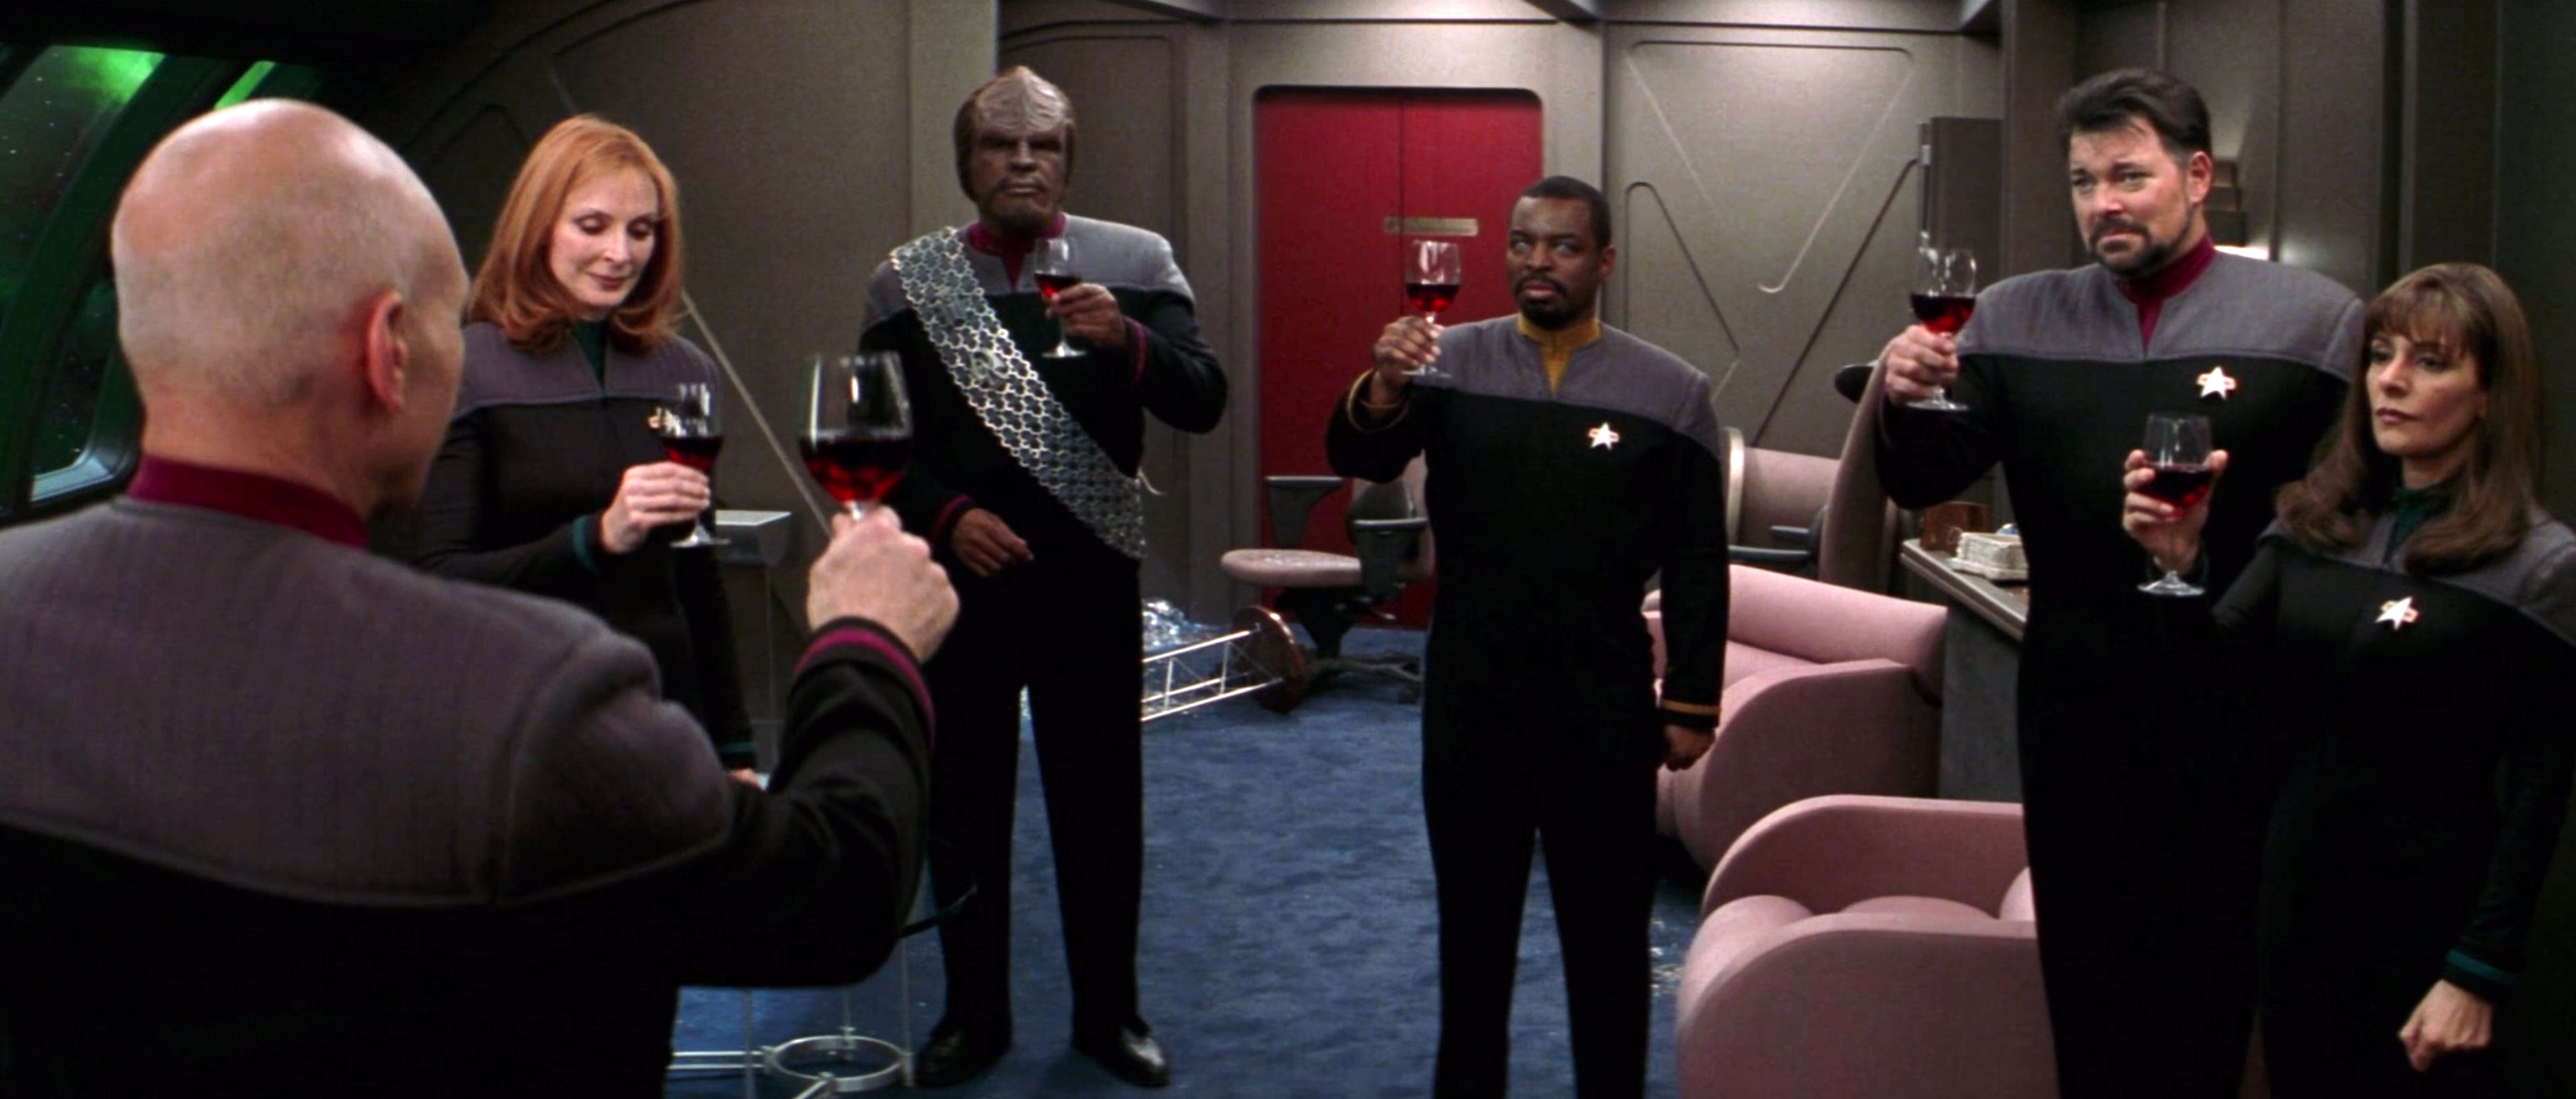 """To absent friends."" Picard leads a toast after Data sacrifices himself in Star Trek: Nemesis"